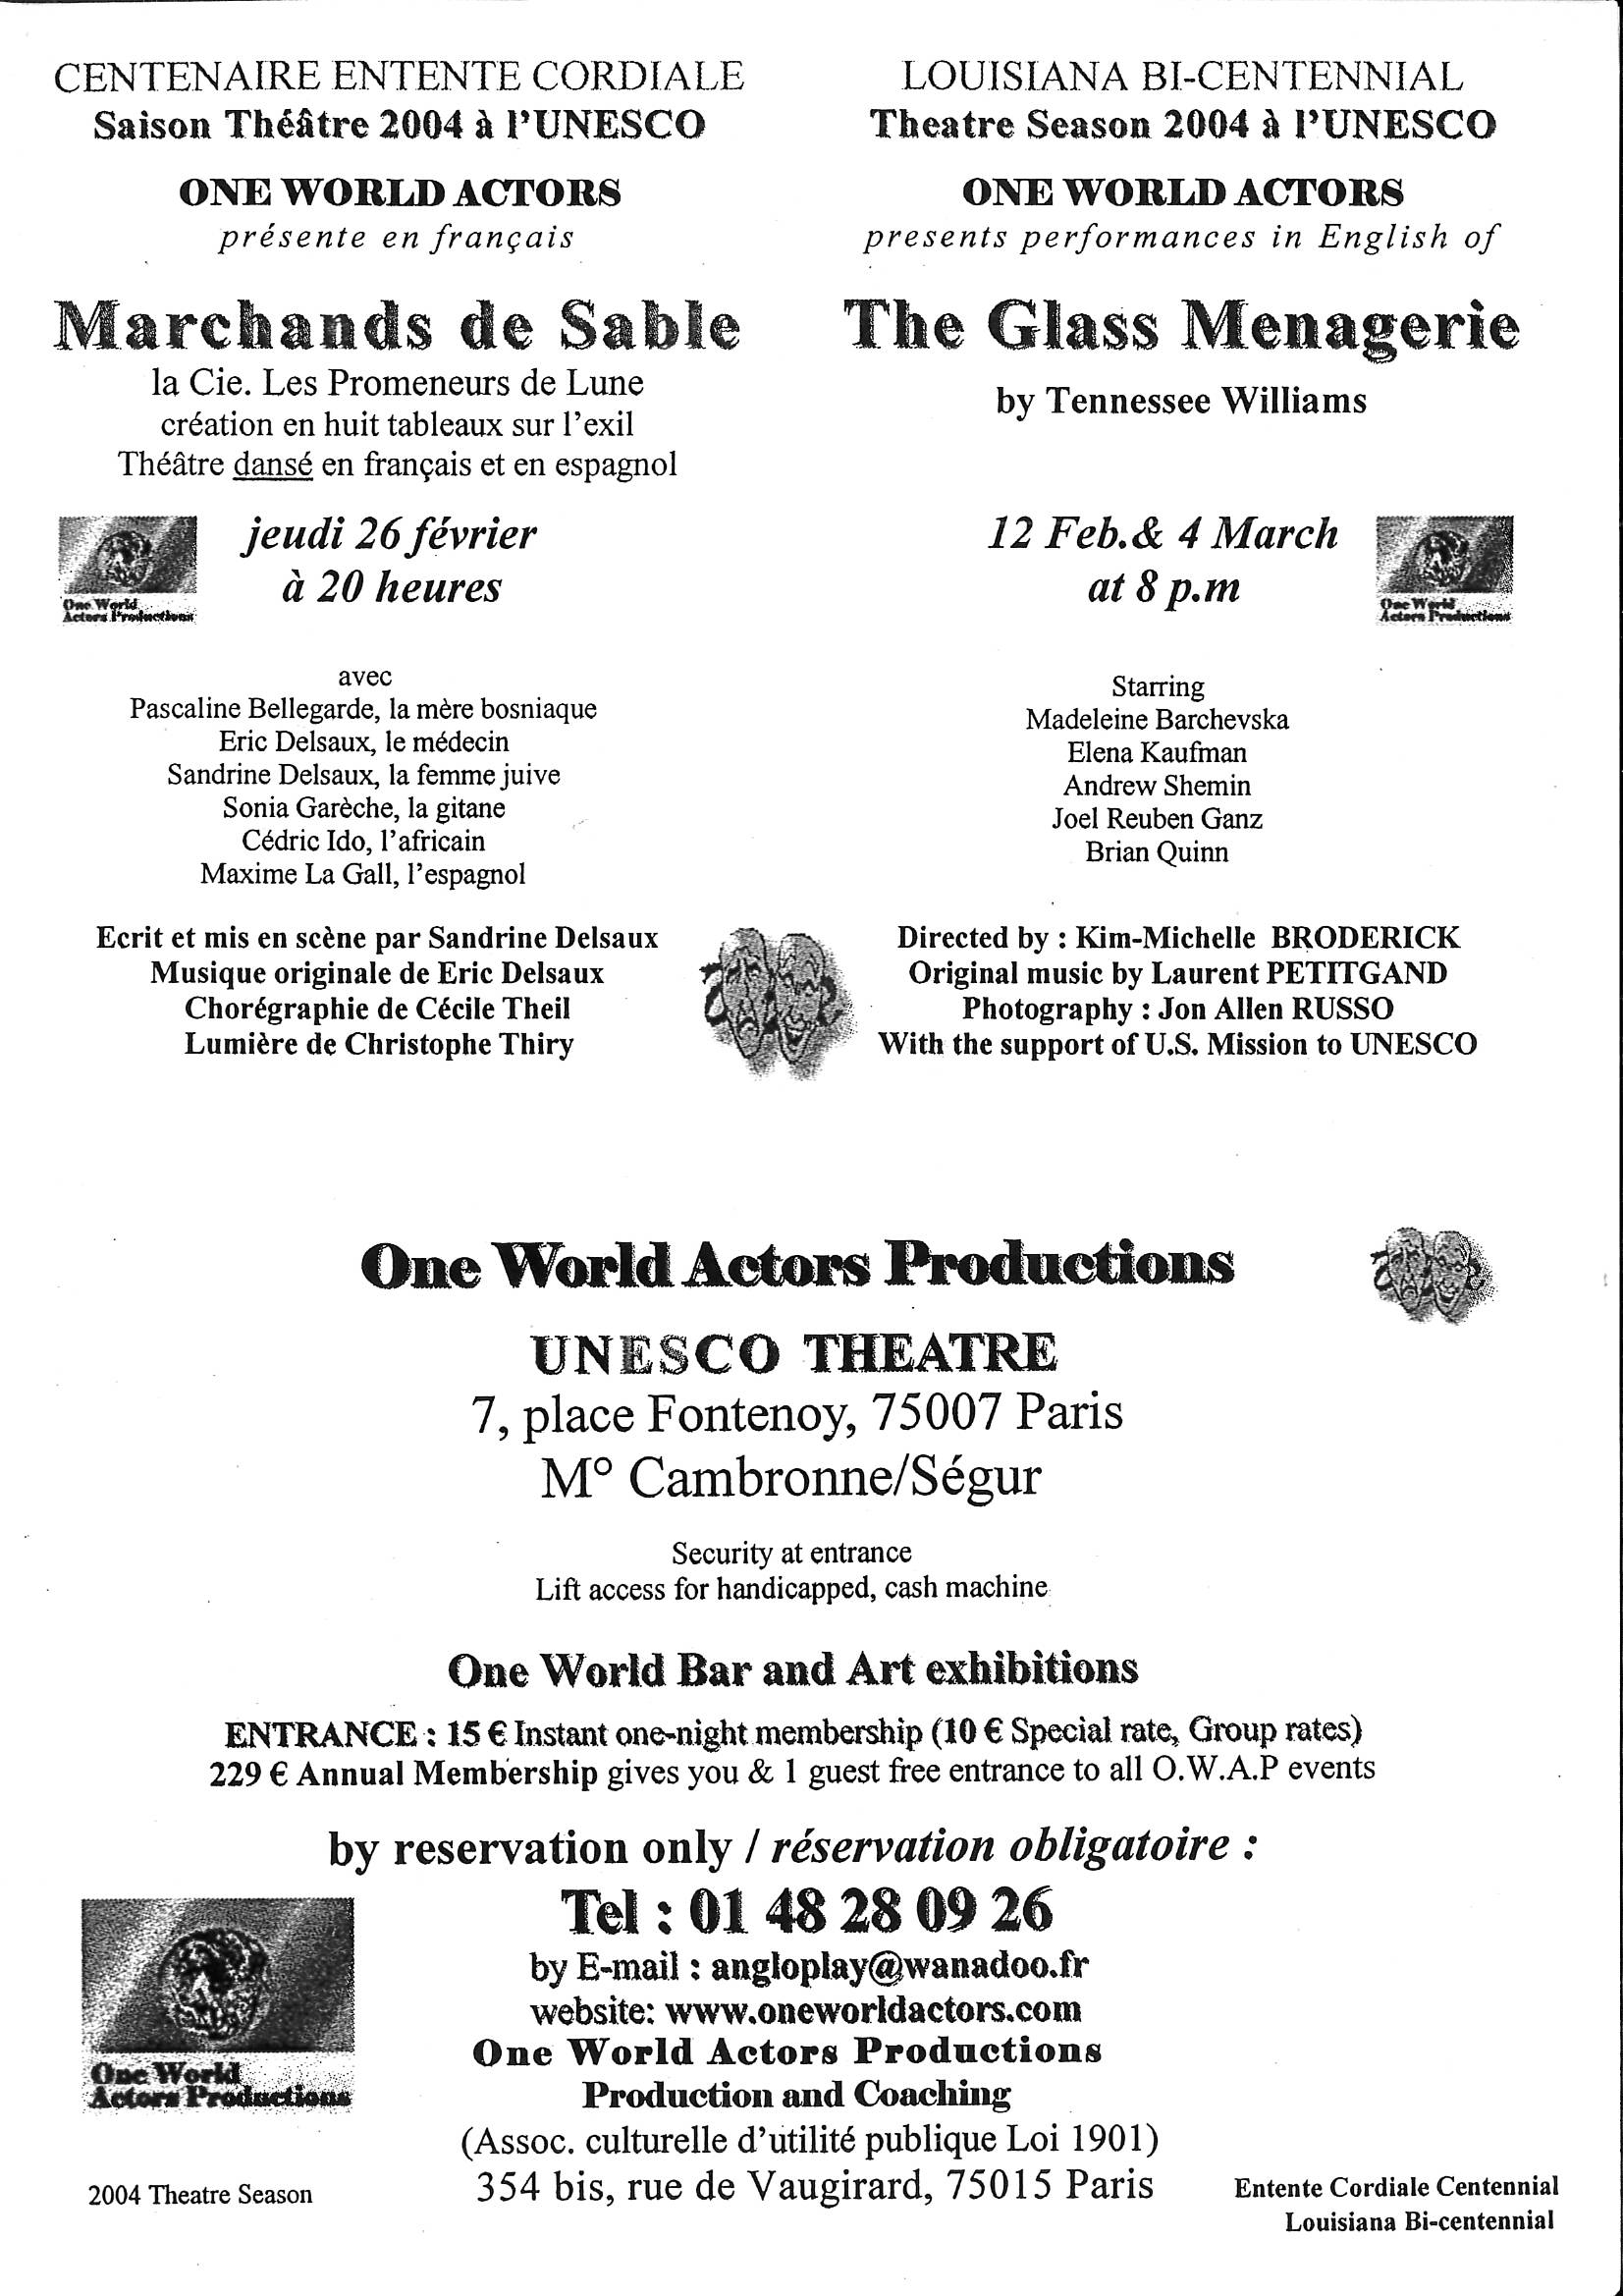 WAP leaflet entire THE GLASS MENAGERIE UNESCO Paris France Kim Michelle Broderick Producer and Director OWAP Founding President.jpg